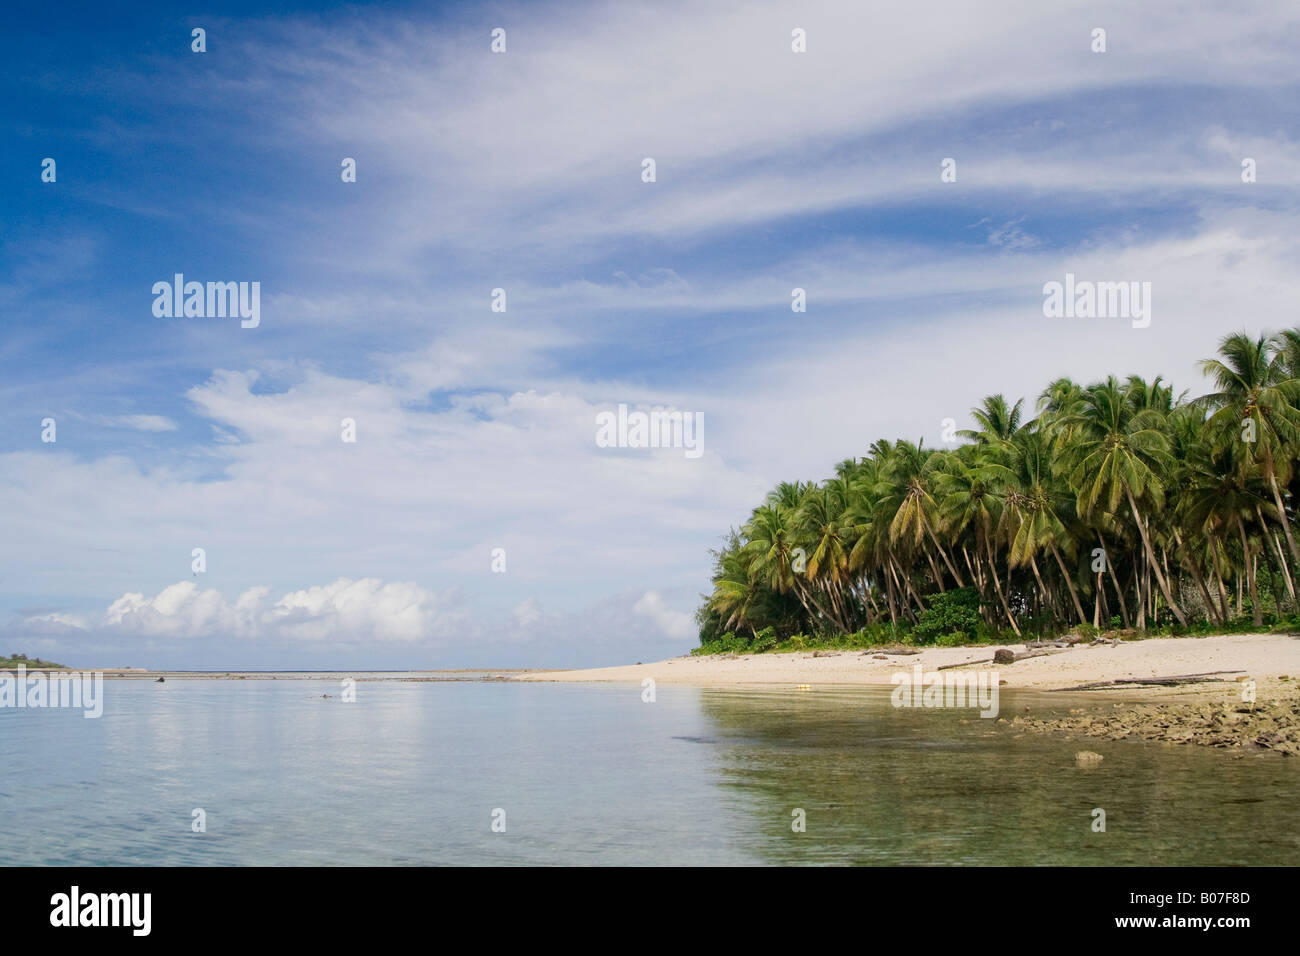 Lagoon, Jaluit Atoll, Marshall Islands - Stock Image